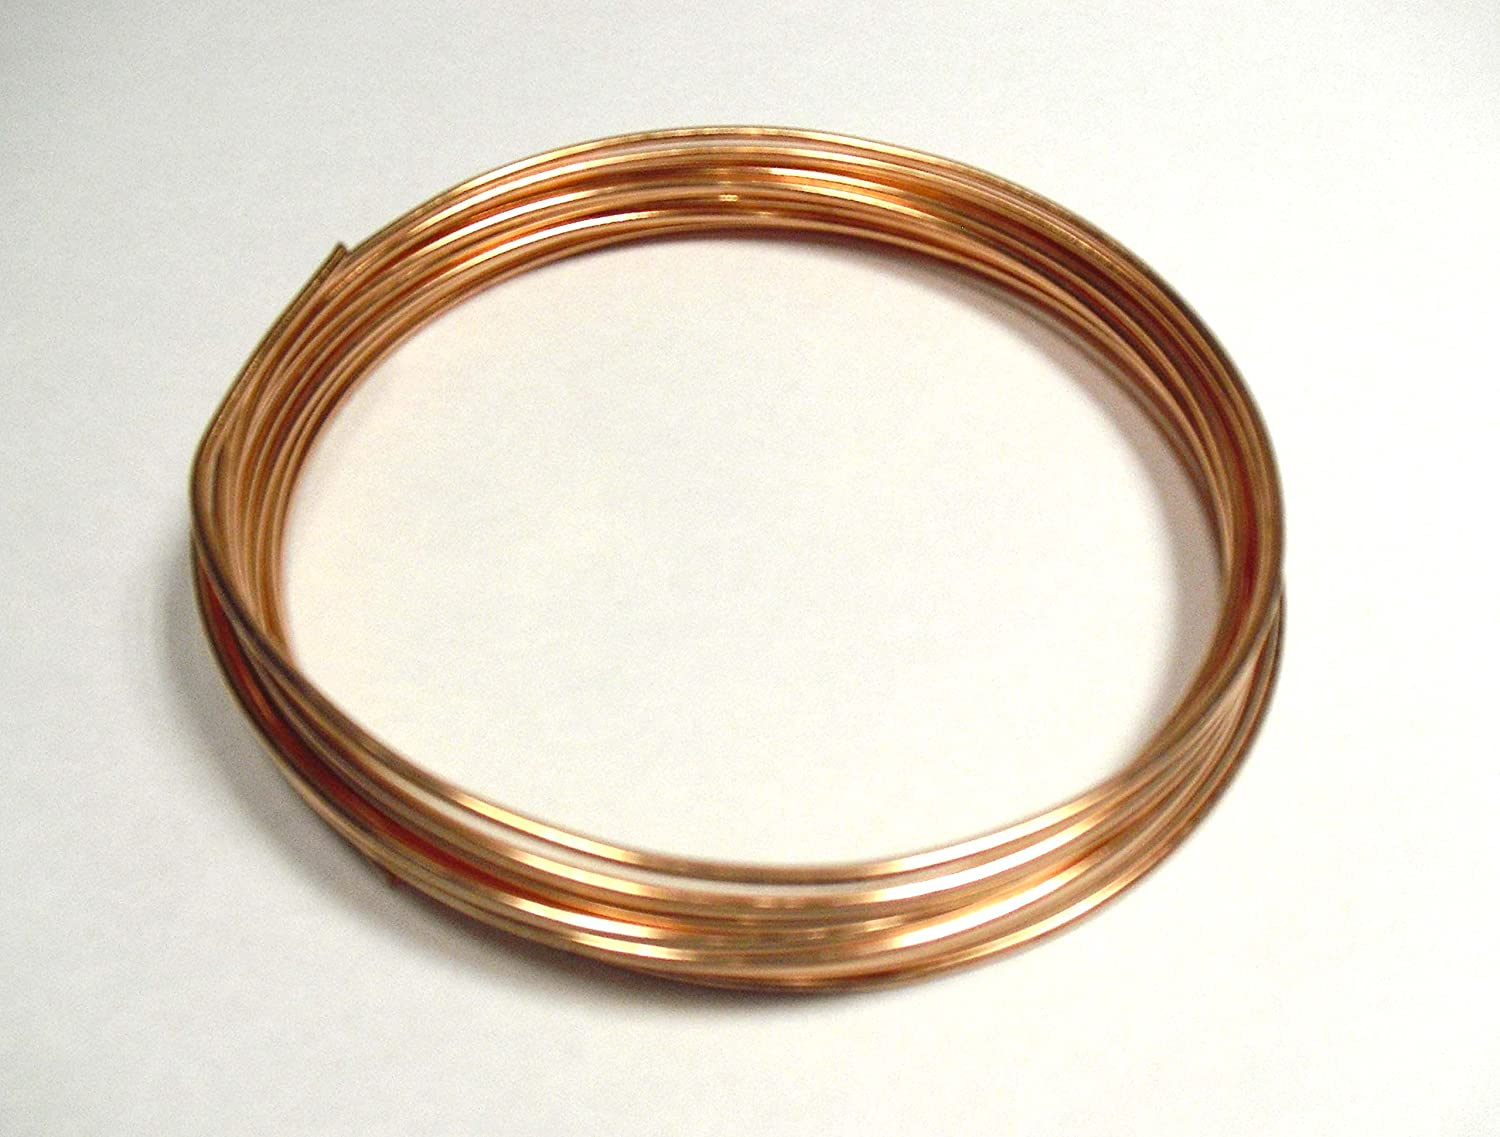 Unplated uncoated Quality bare Copper Wire 1kg  Jewellery Making Wire Craft